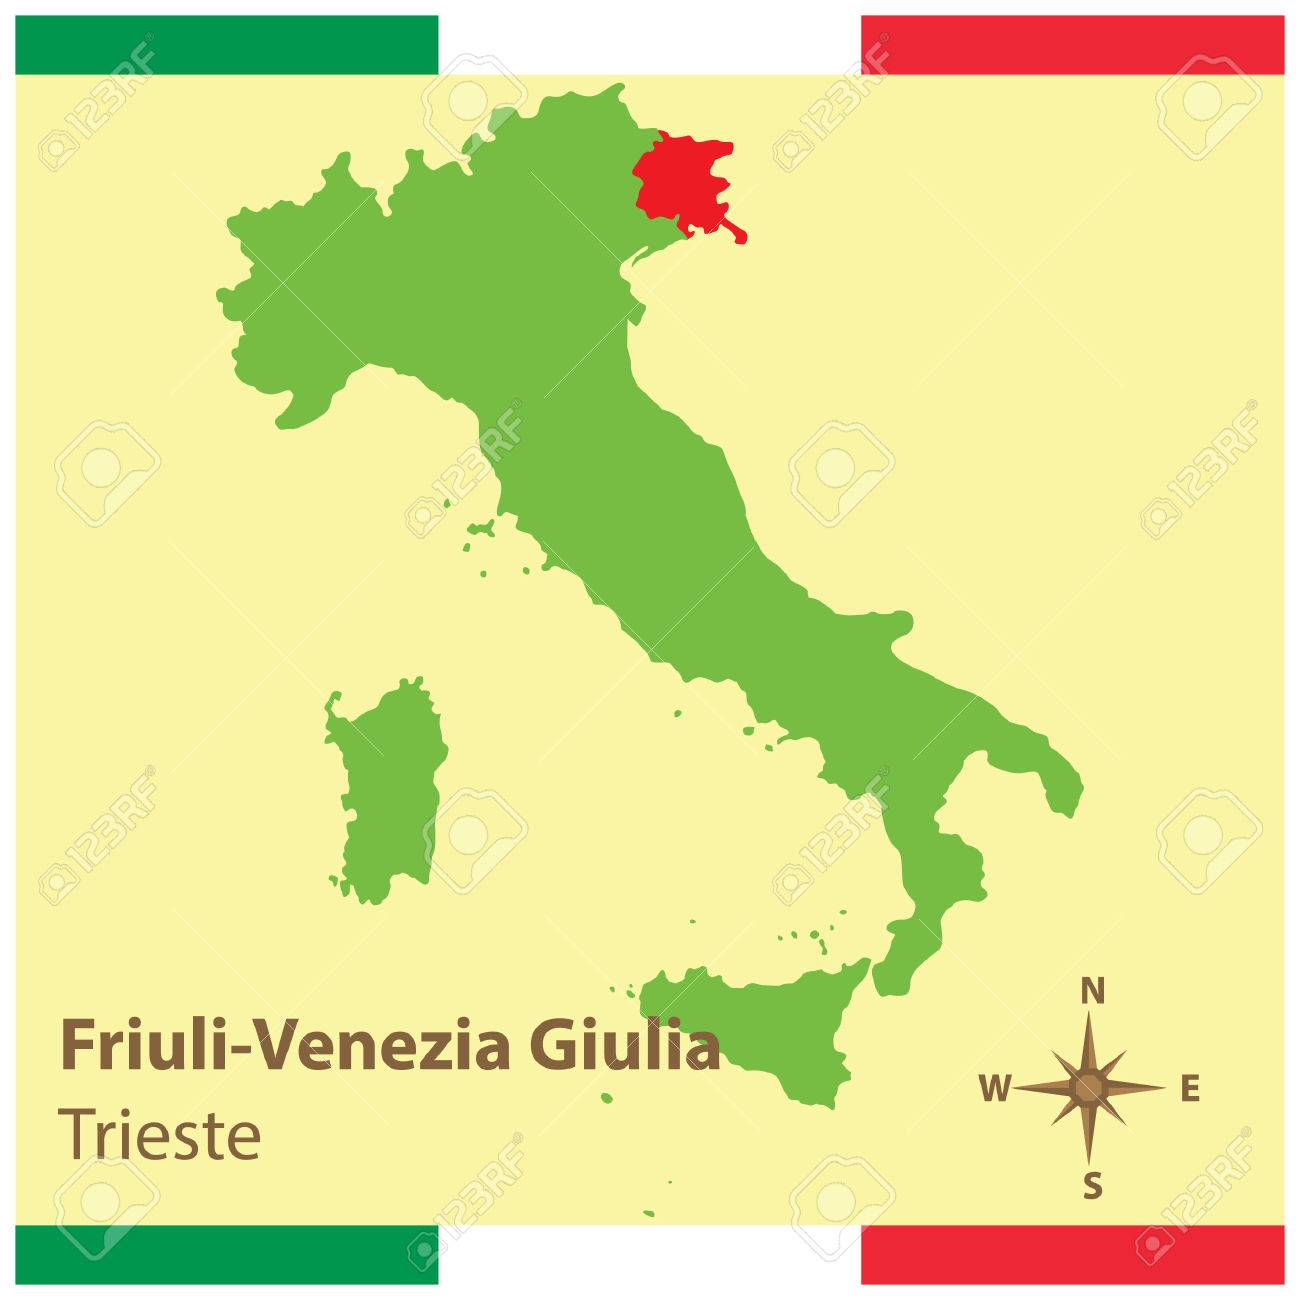 Friuli Italy Map.Friuli Venezia Giulia On Italy Map Royalty Free Cliparts Vectors